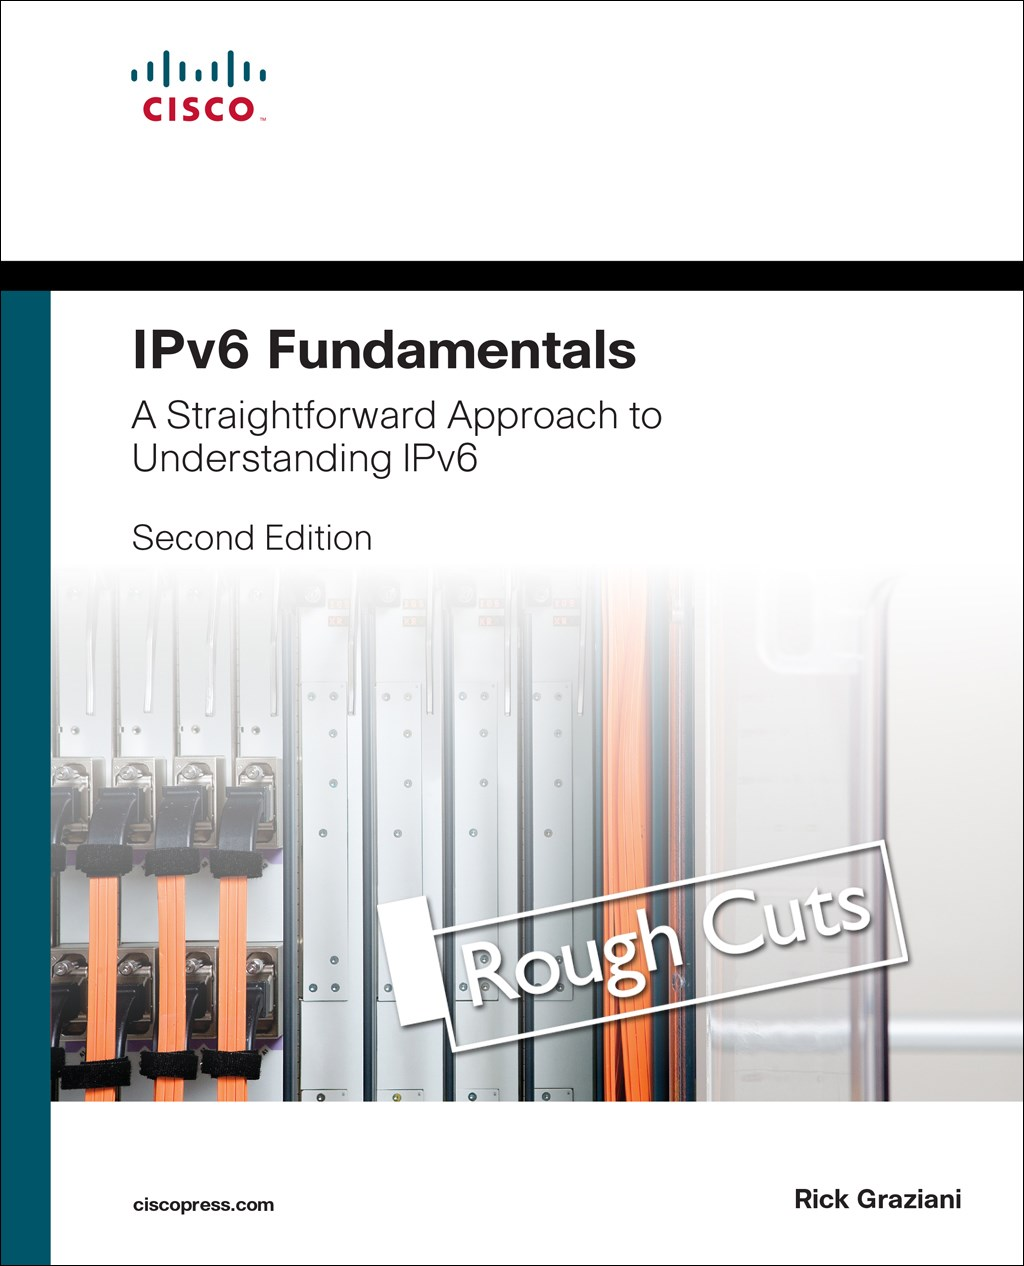 IPv6 Fundamentals: A Straightforward Approach to Understanding IPv6, Rough Cuts, 2nd Edition